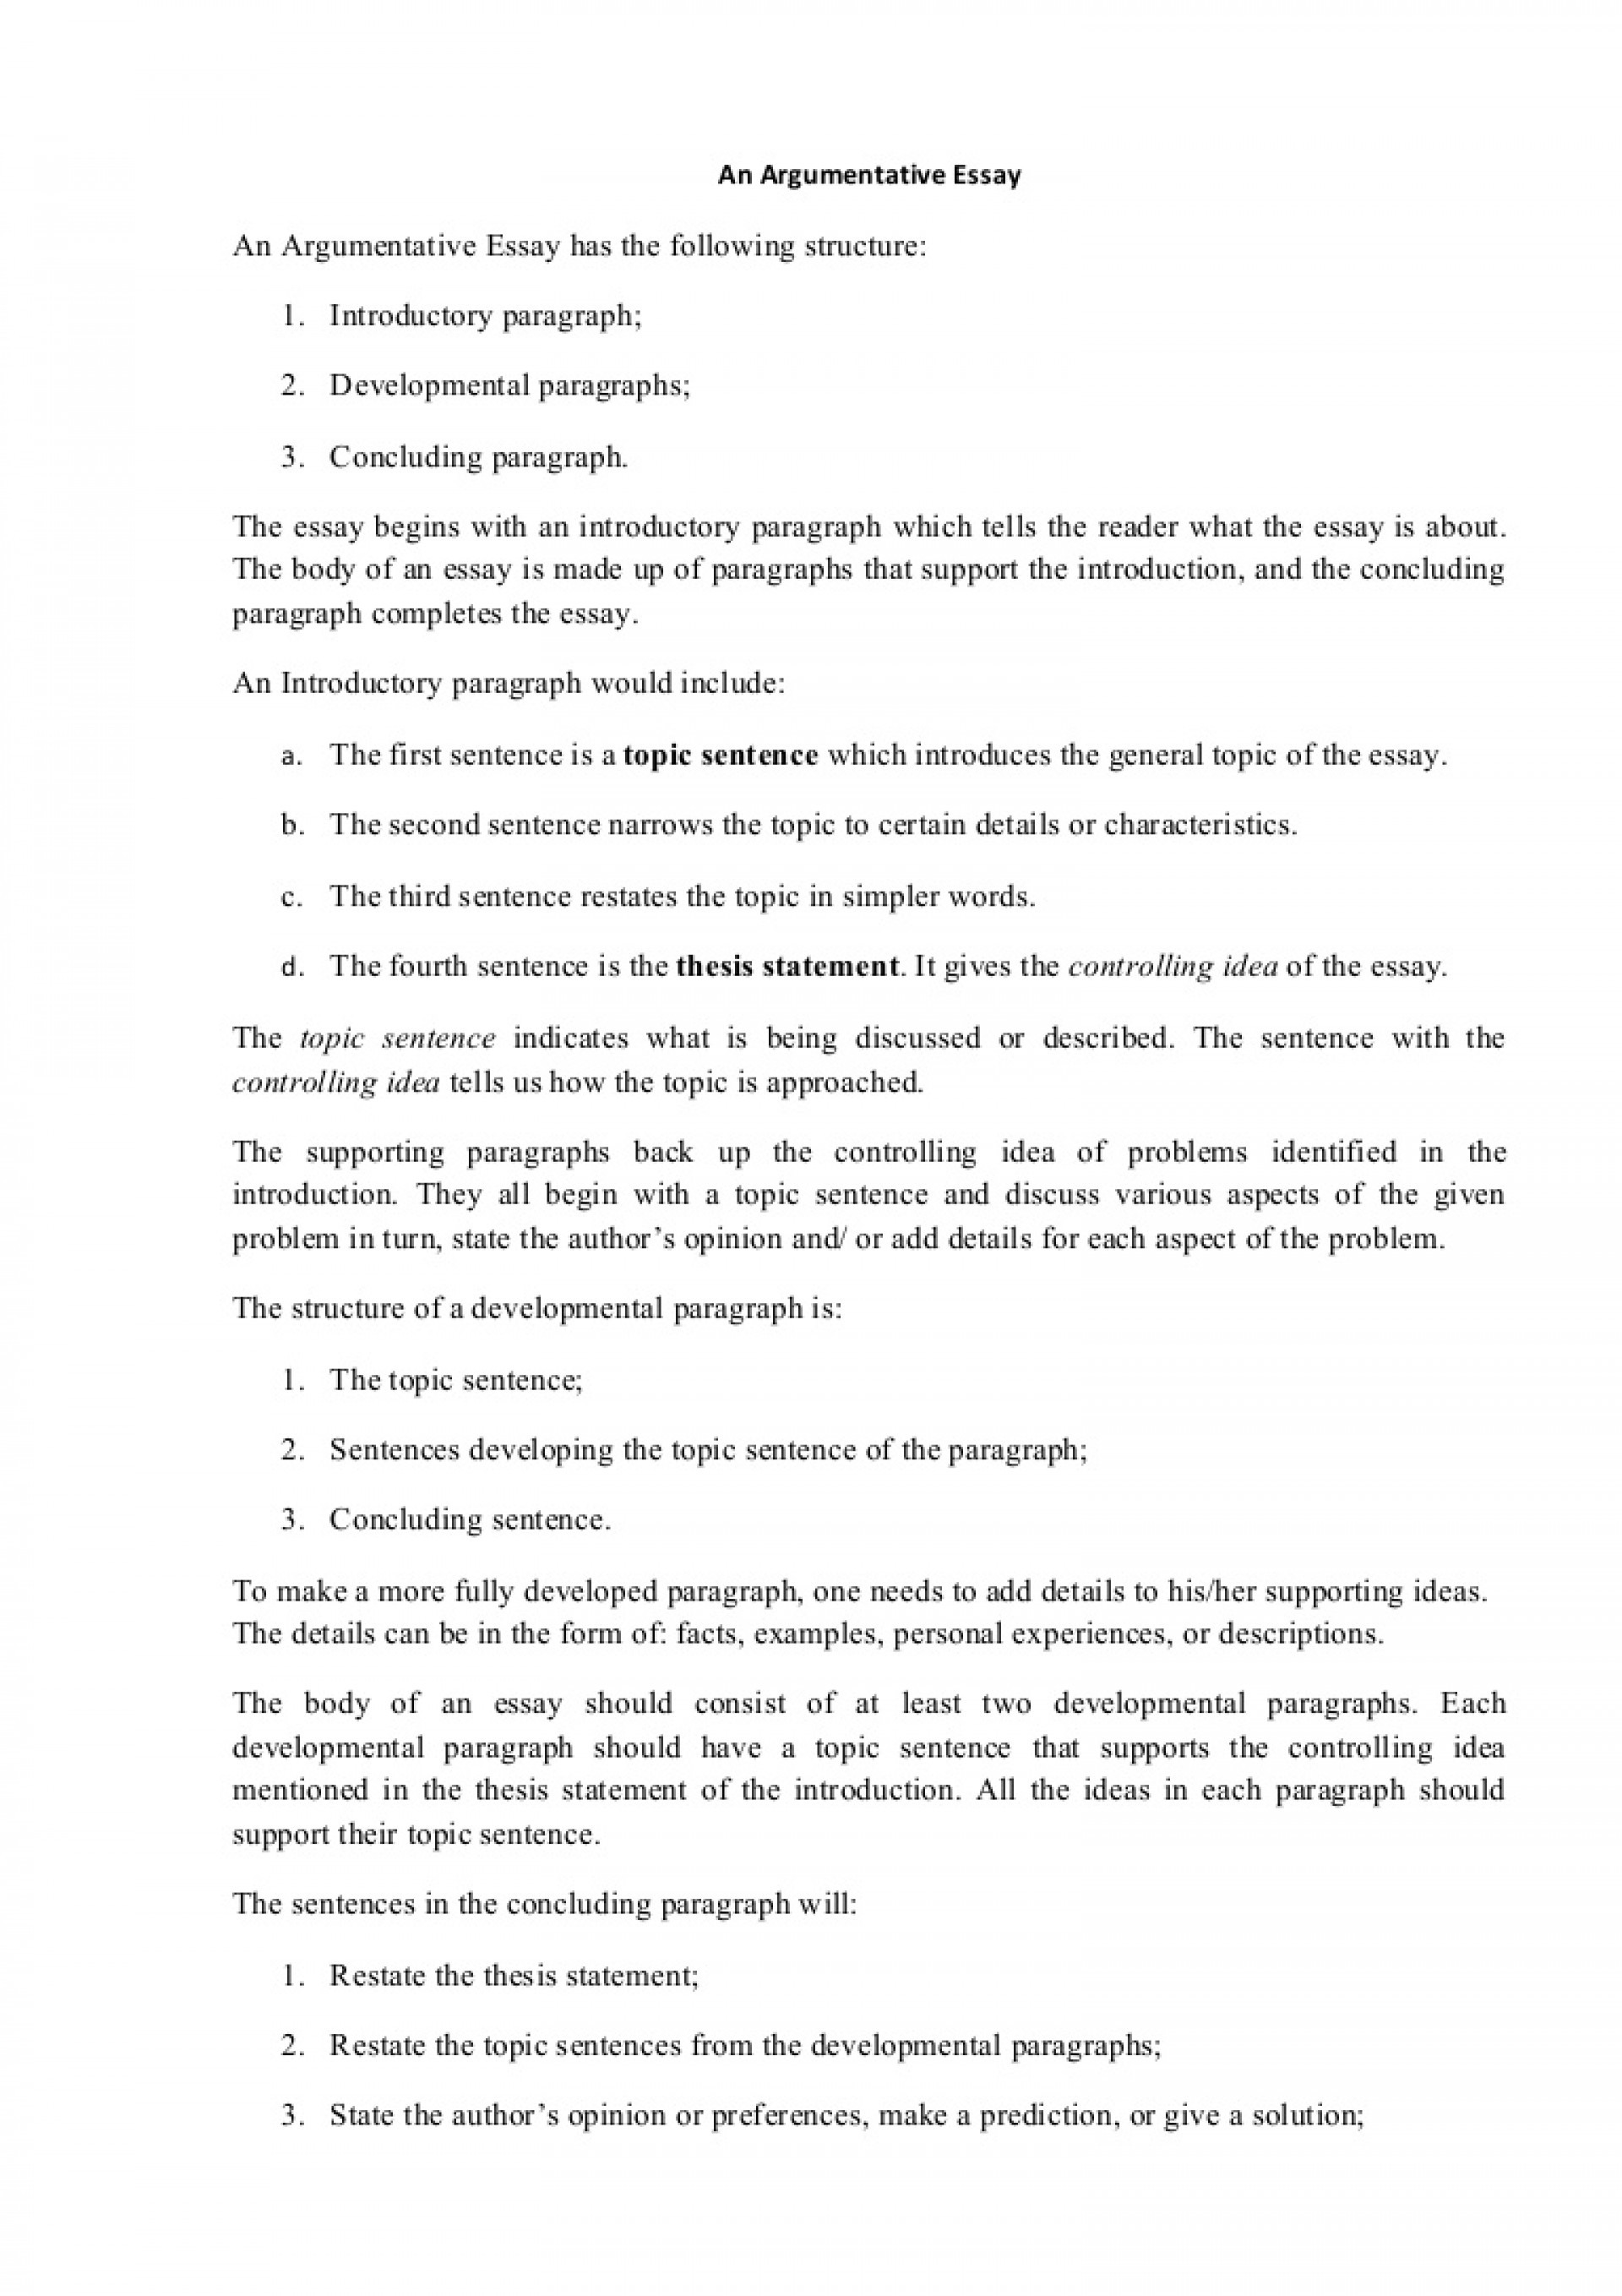 005 Argumentativeessaystructure Phpapp01 Thumbnail Essay Example Persuasive Outstanding Structure Nat 5 Pdf 1920